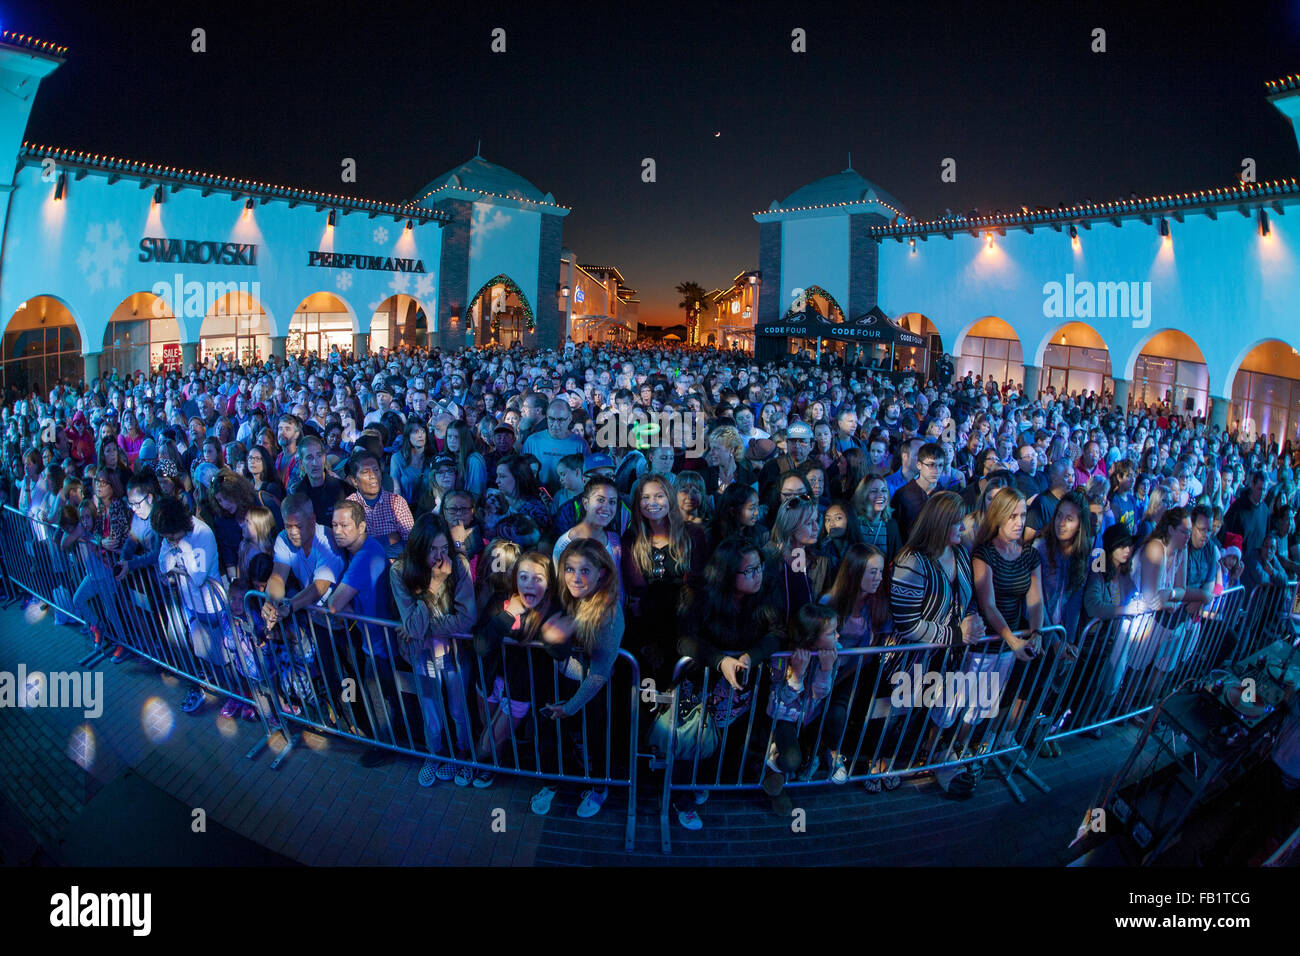 A large audience attends a night time Christmas rock 'n' roll concert at a San Clemente, CA, shopping mall. - Stock Image